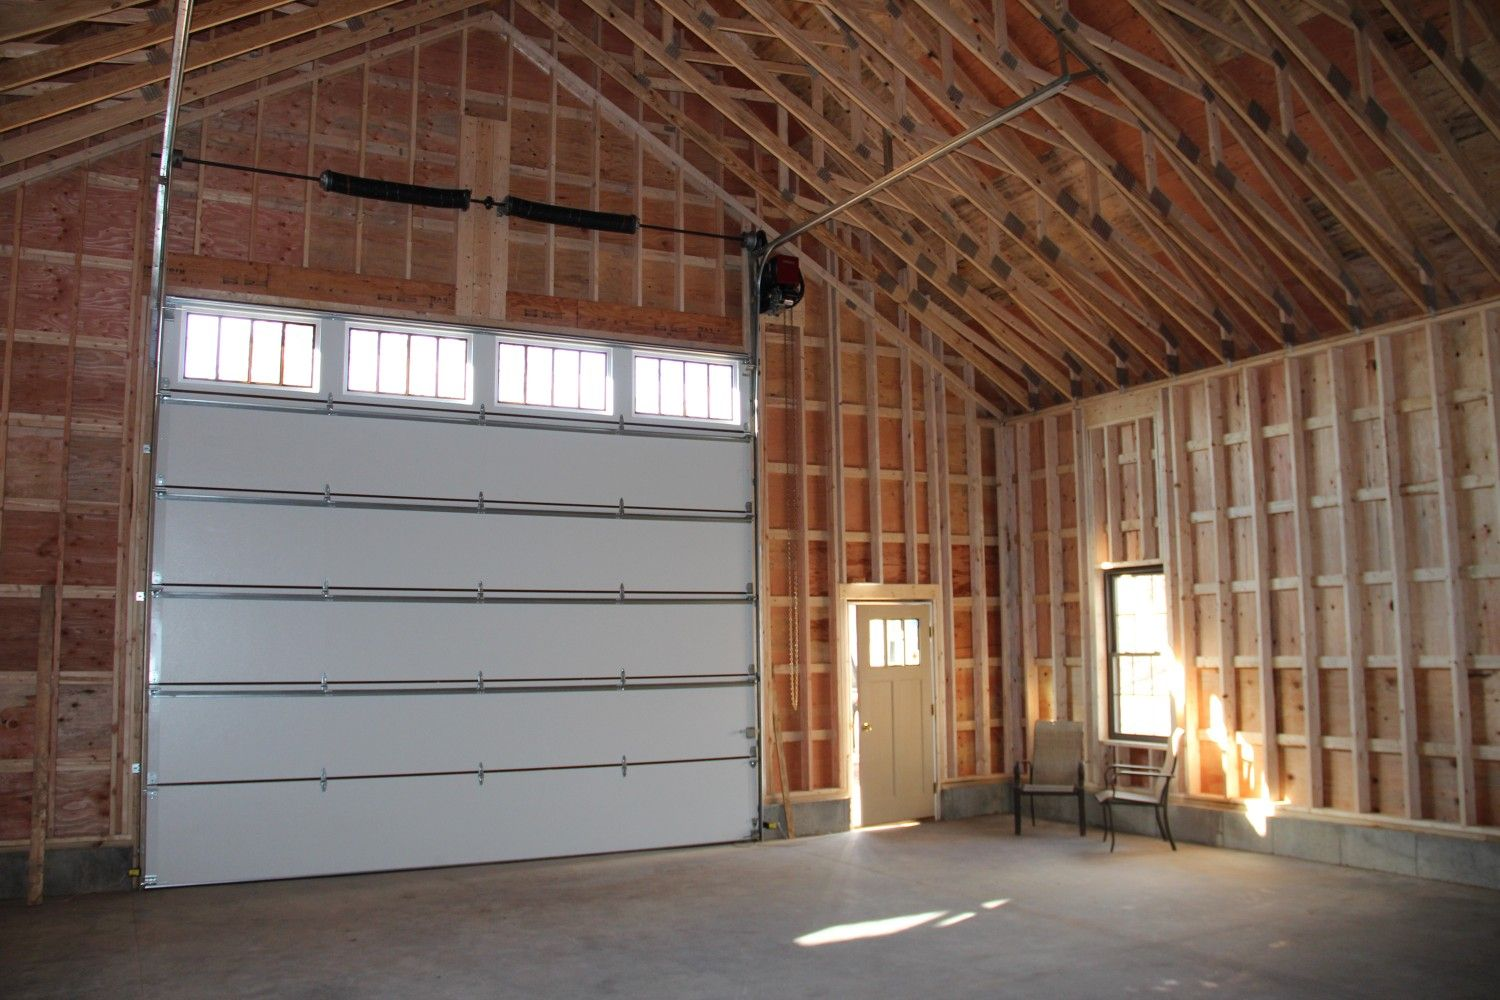 36 X 68 Newport Garage The Barn Yard Great Country Garages Home Building Tips Overhead Garage Door Garage Doors